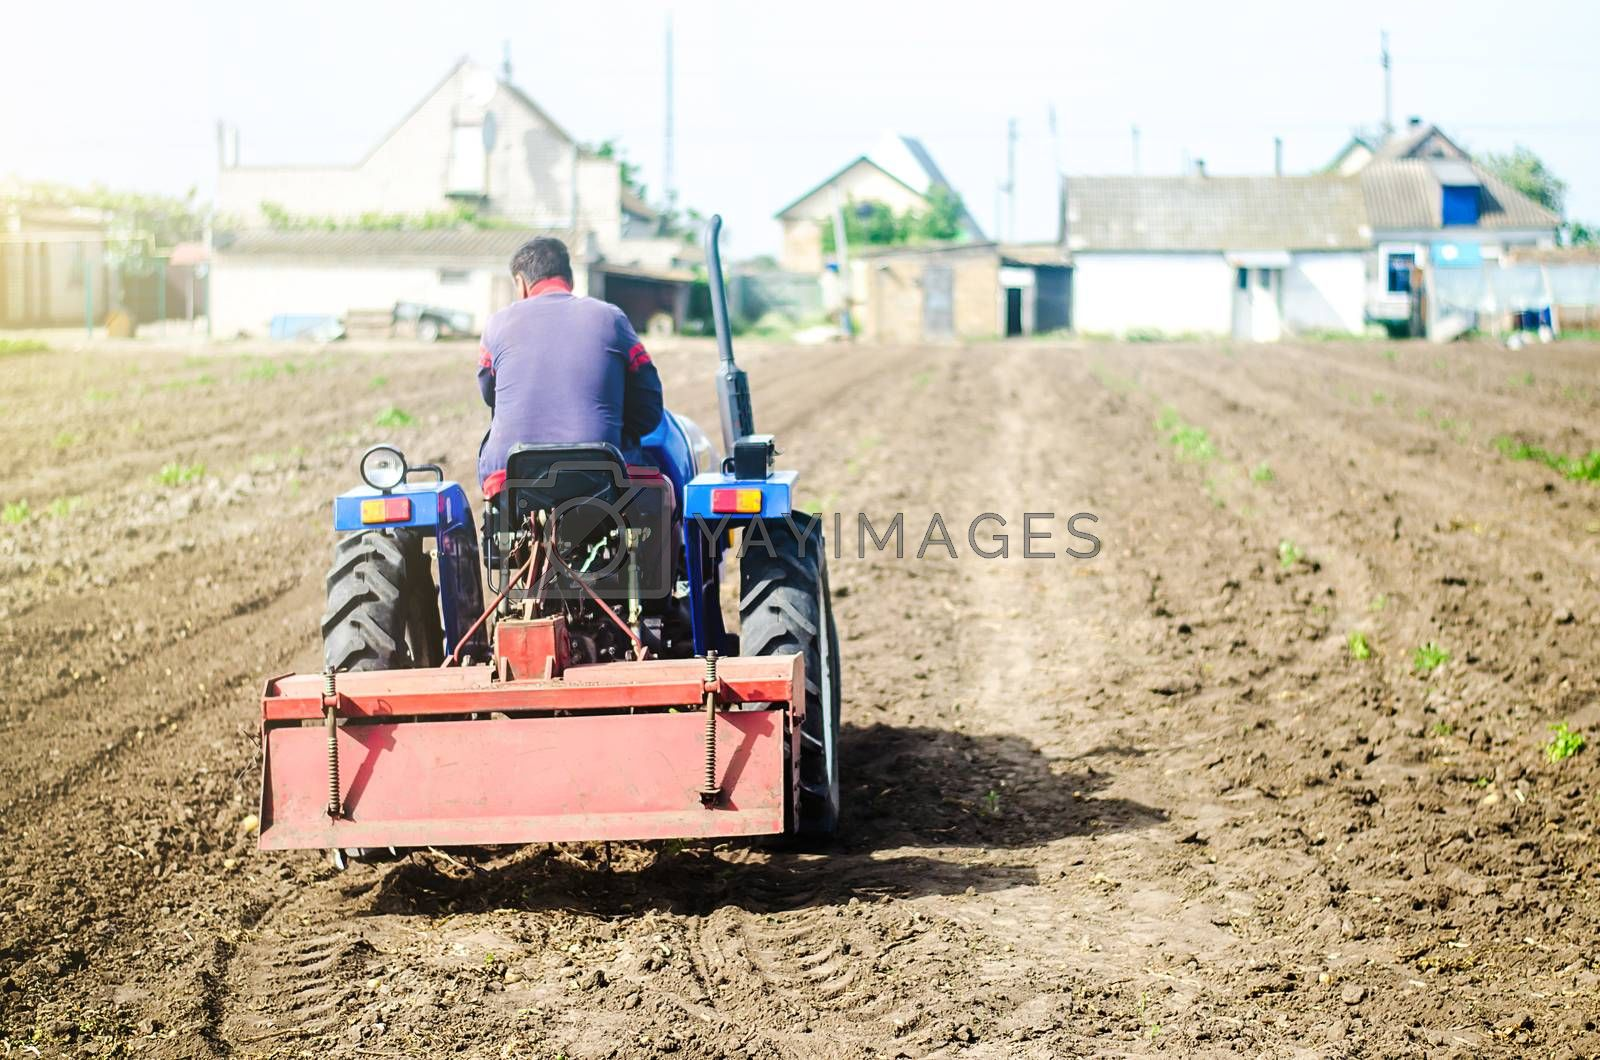 The farmer drives a tractor with a milling unit equipment. Loosening surface, land cultivation Use of agricultural machinery and to simplify and speed up work. Farming, agriculture. Plowing the field.